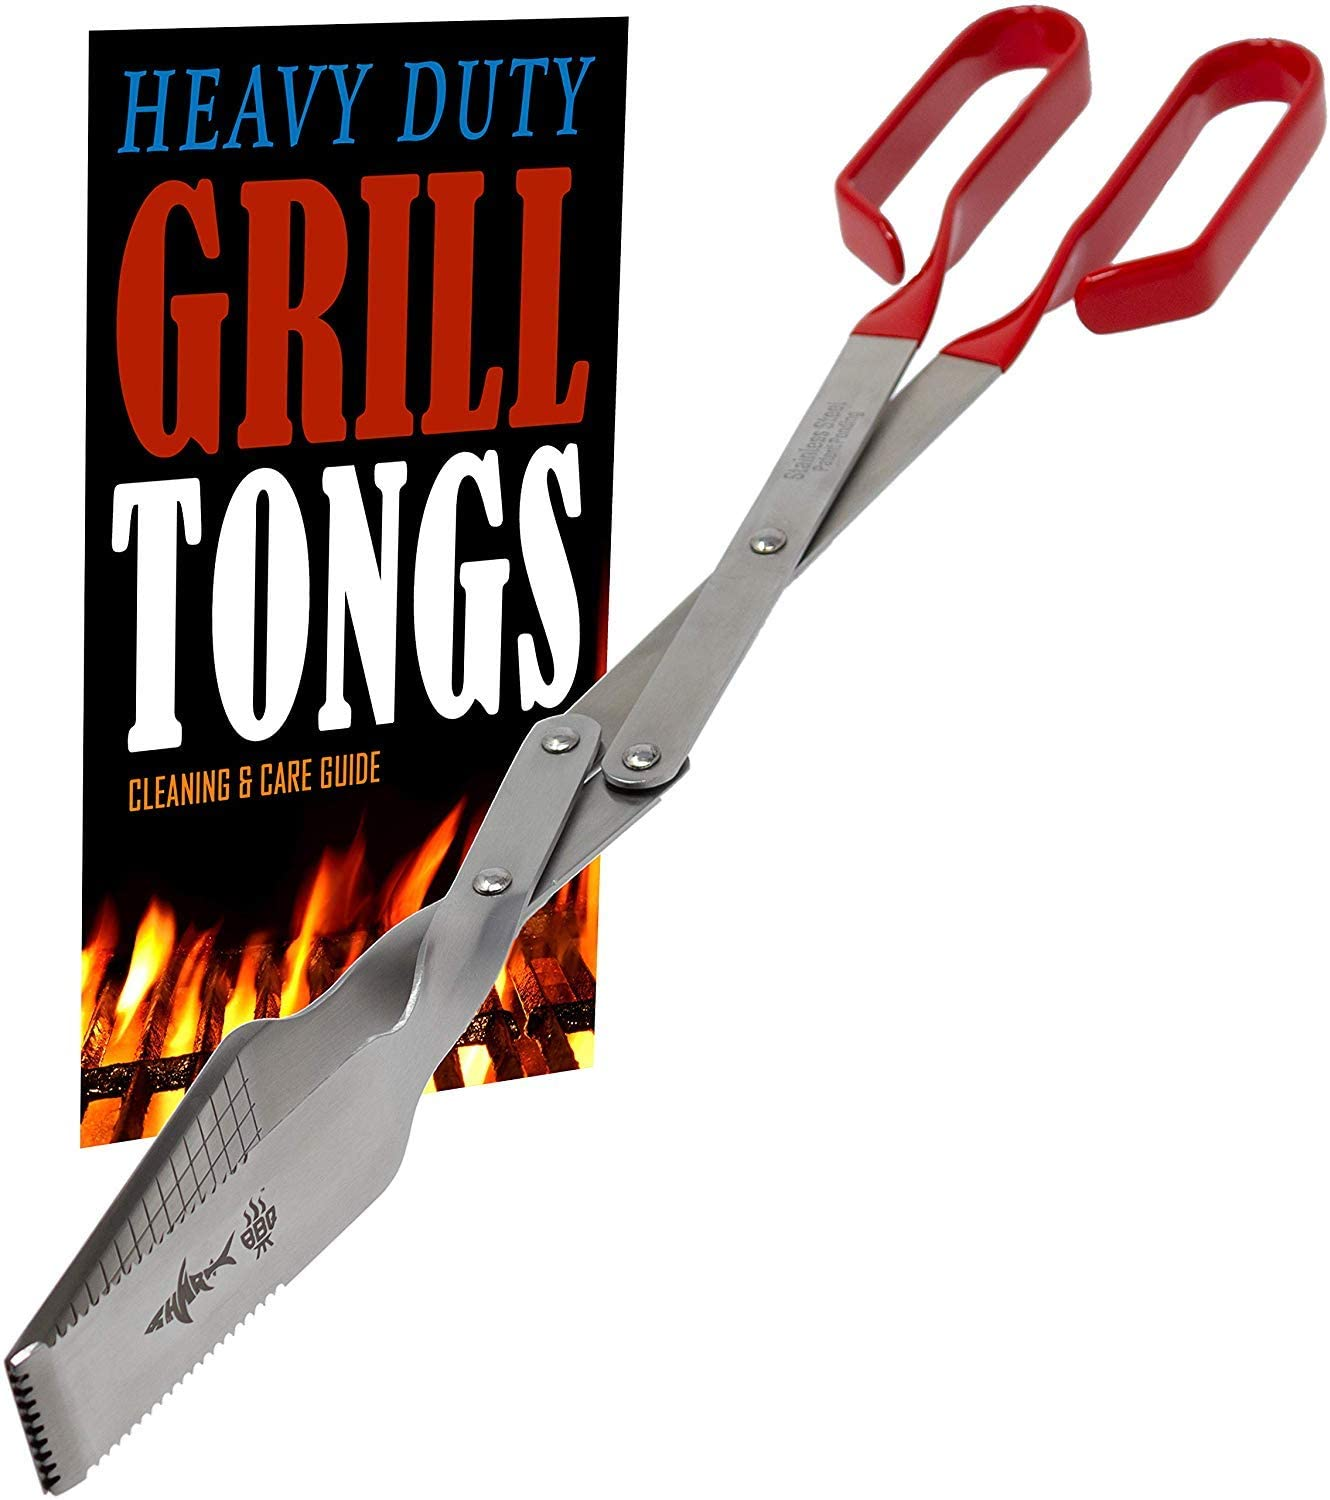 Grill Tongs - Extra Long Barbecue Today's only price w Grilling Handle Red Tong L